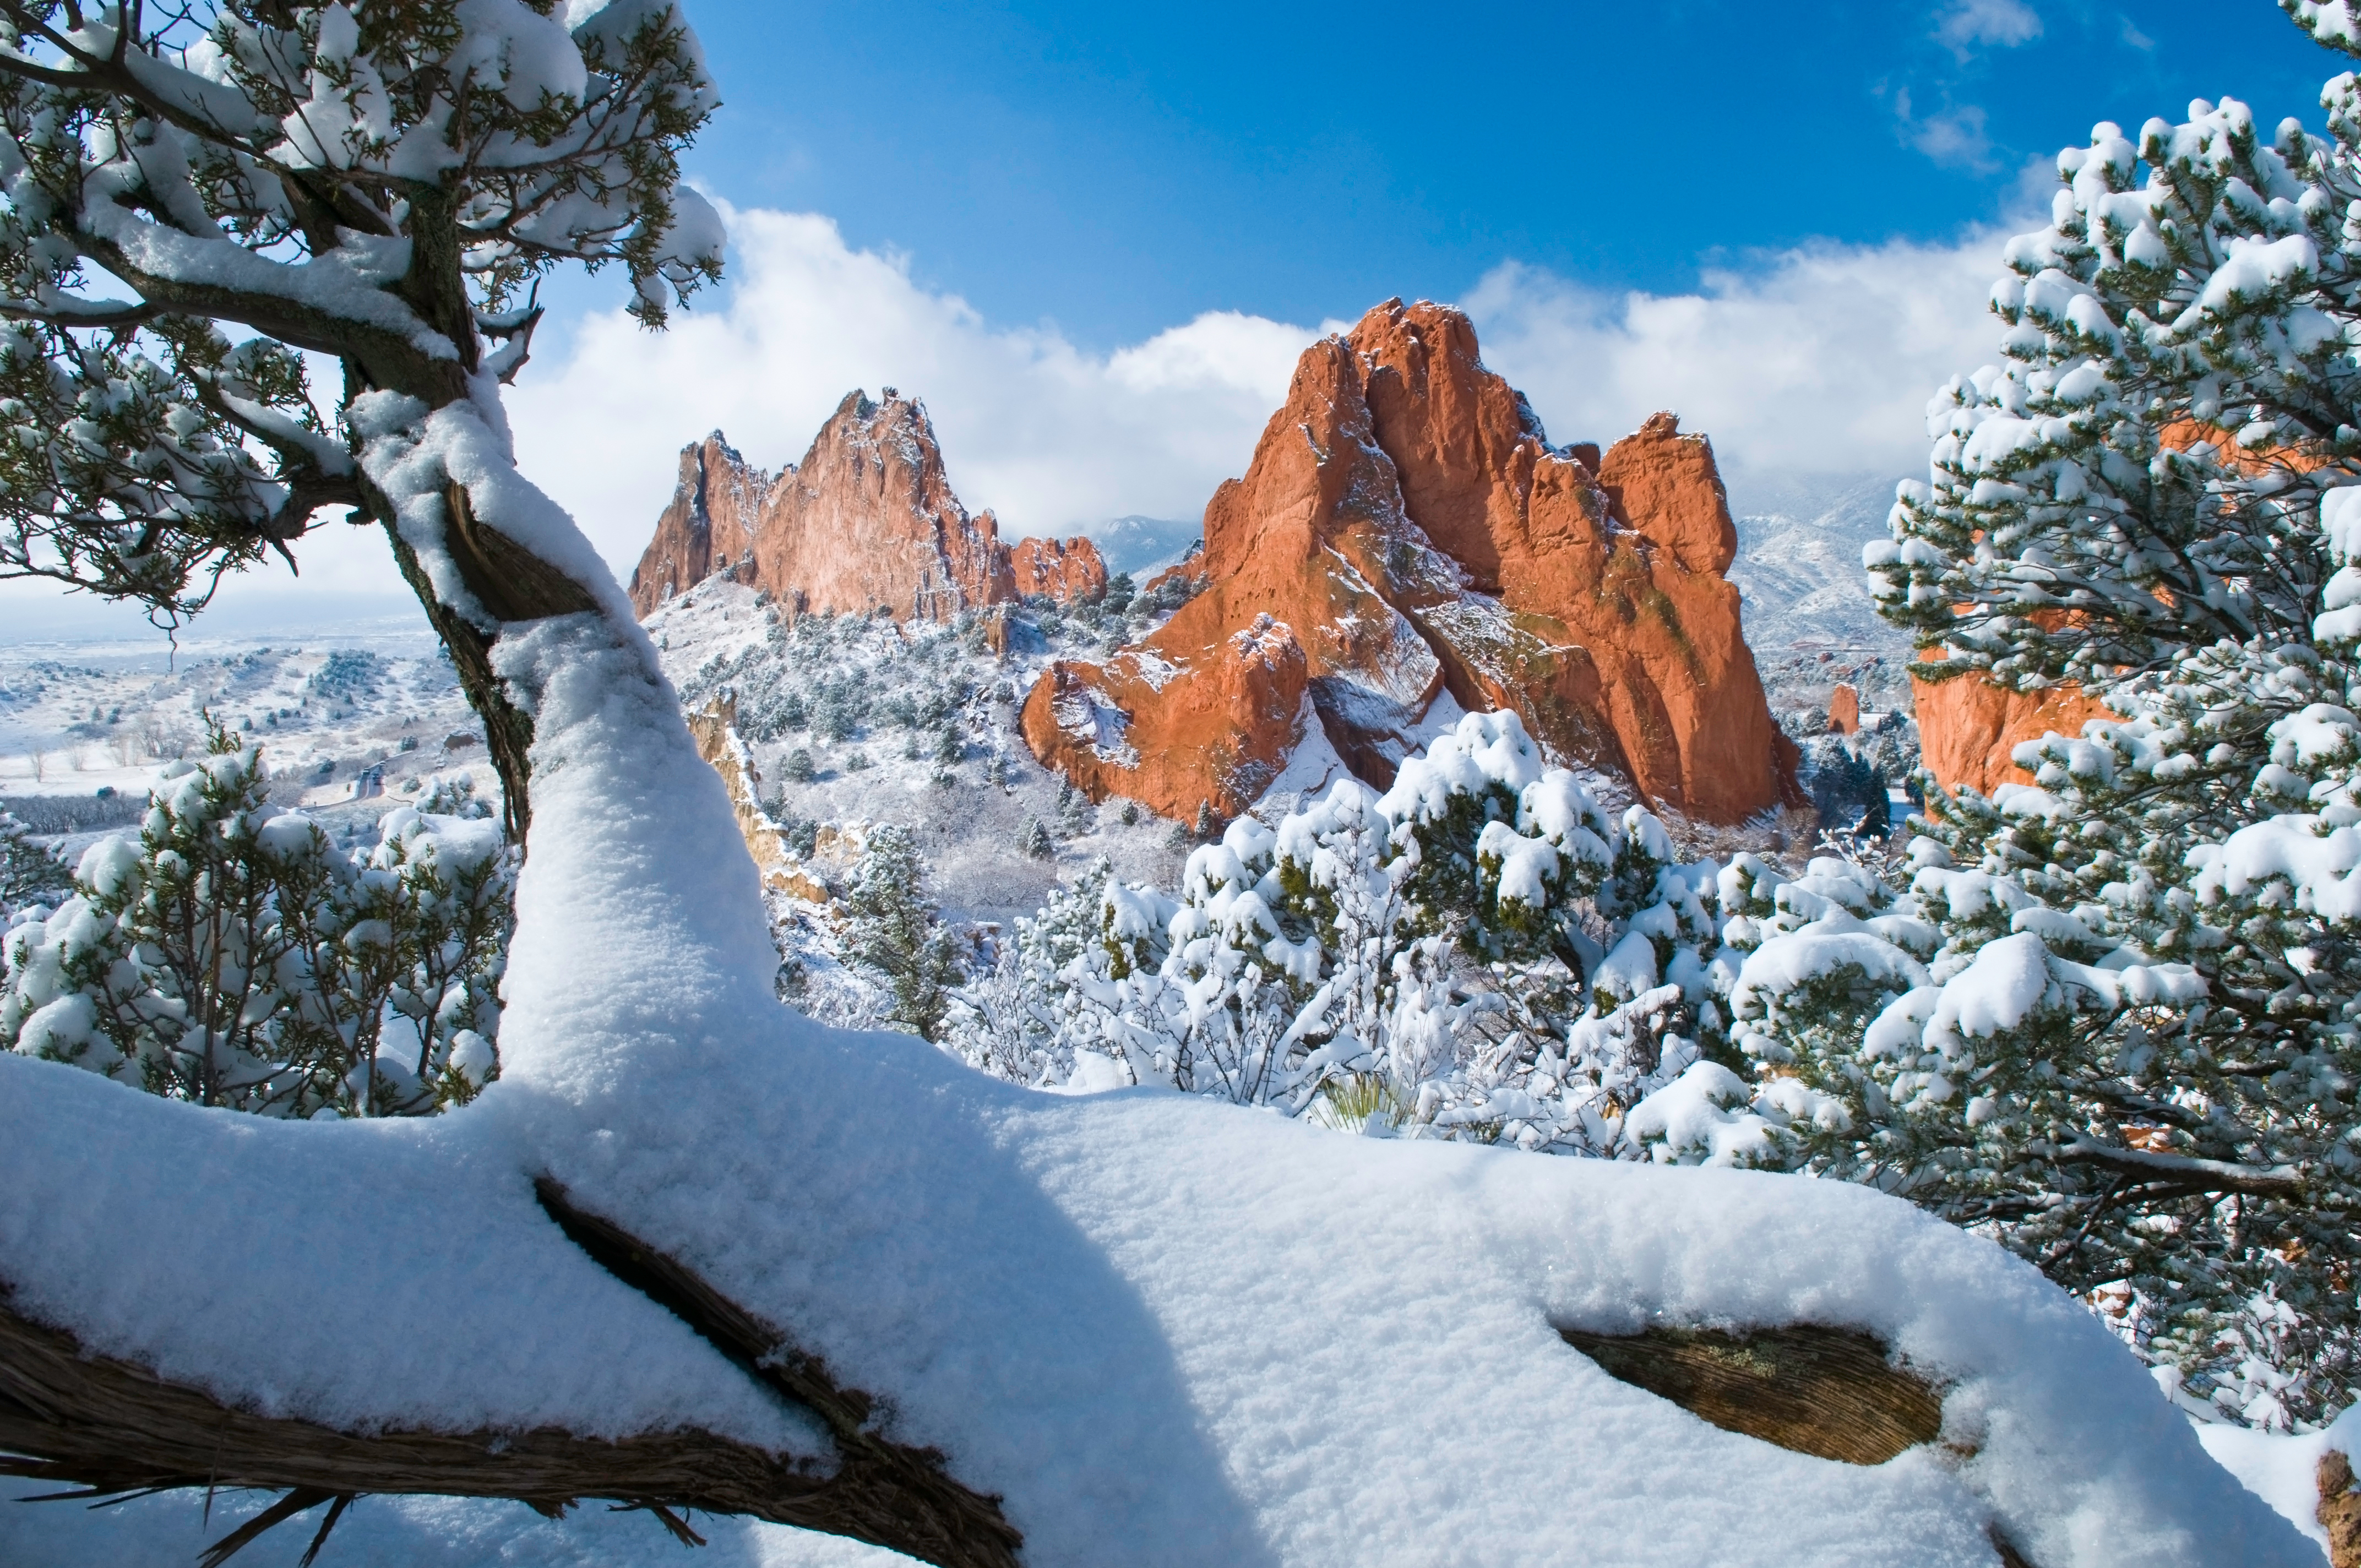 South Gateway Rock Formations at the Garden of the Gods Park in Colorado Springs Colorado after a fresh snowfall